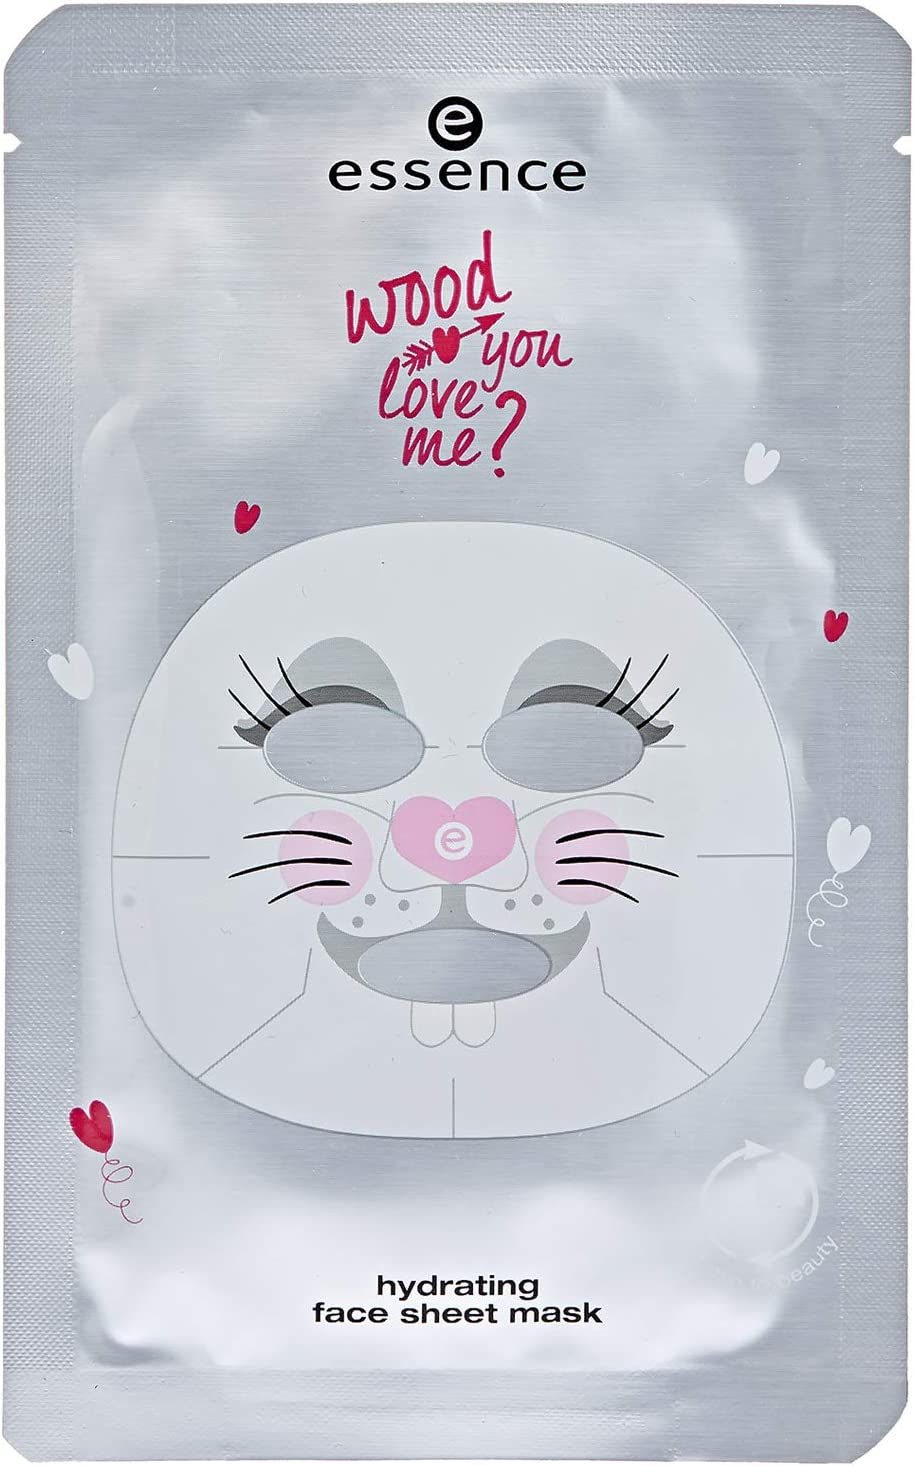 Essence – Máscara facial – Wood You Love Me? – hydrating Face Sheet Mask 01 – Be Happy. be a Bunny.: Amazon.es: Belleza